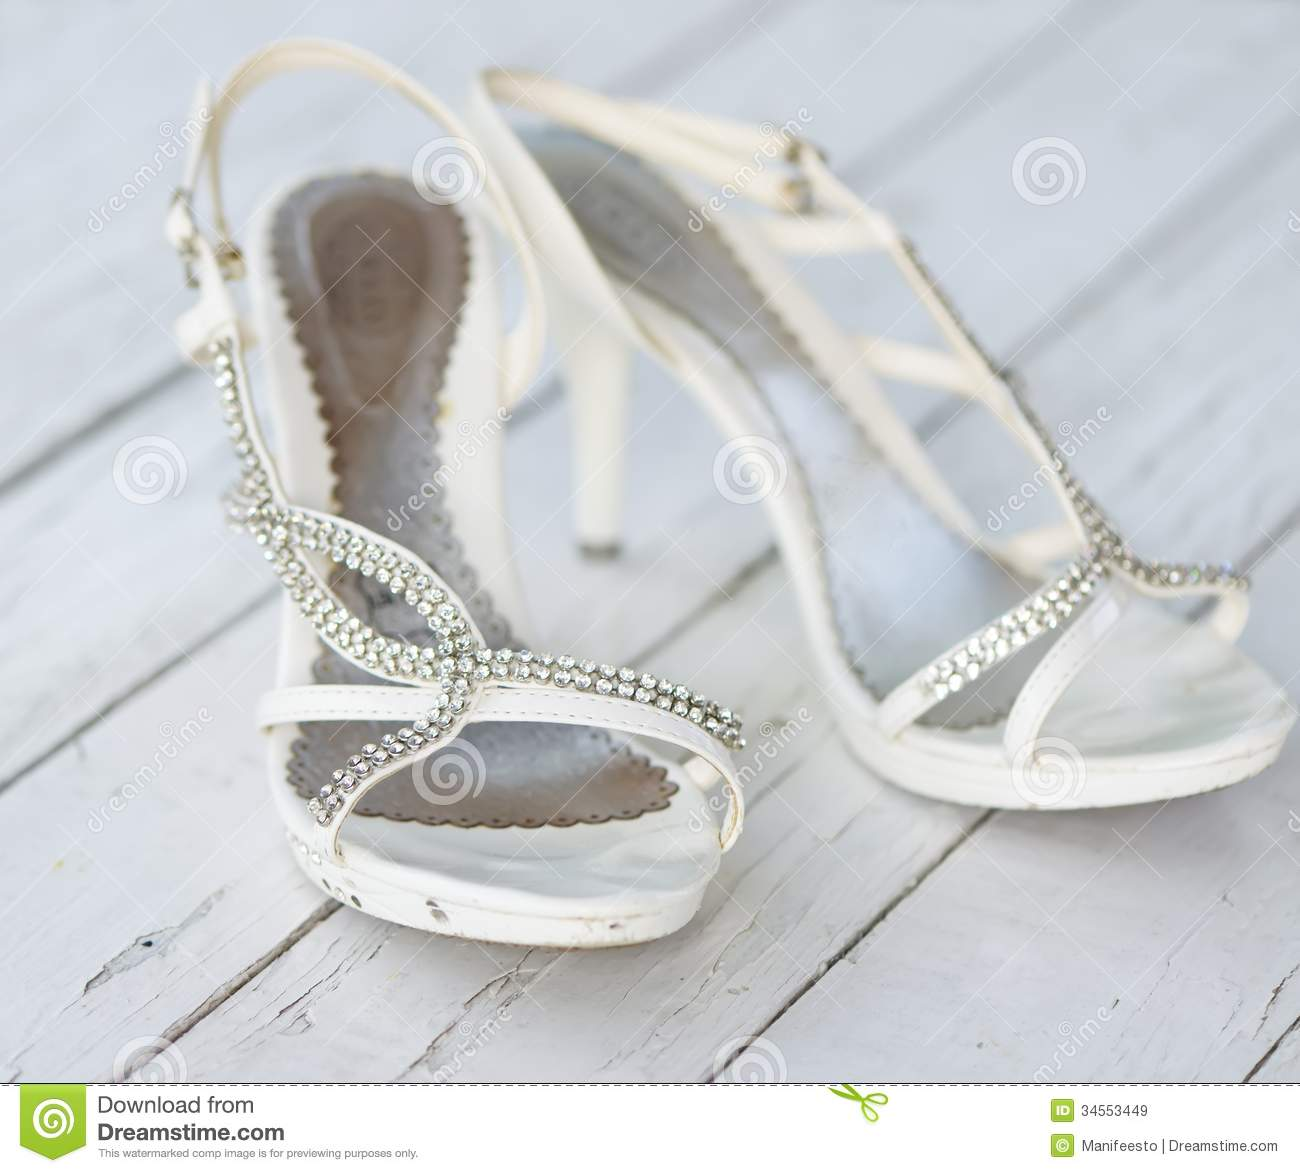 wedding day shoes wedding day shoes royalty free stock images image 34553449 8973